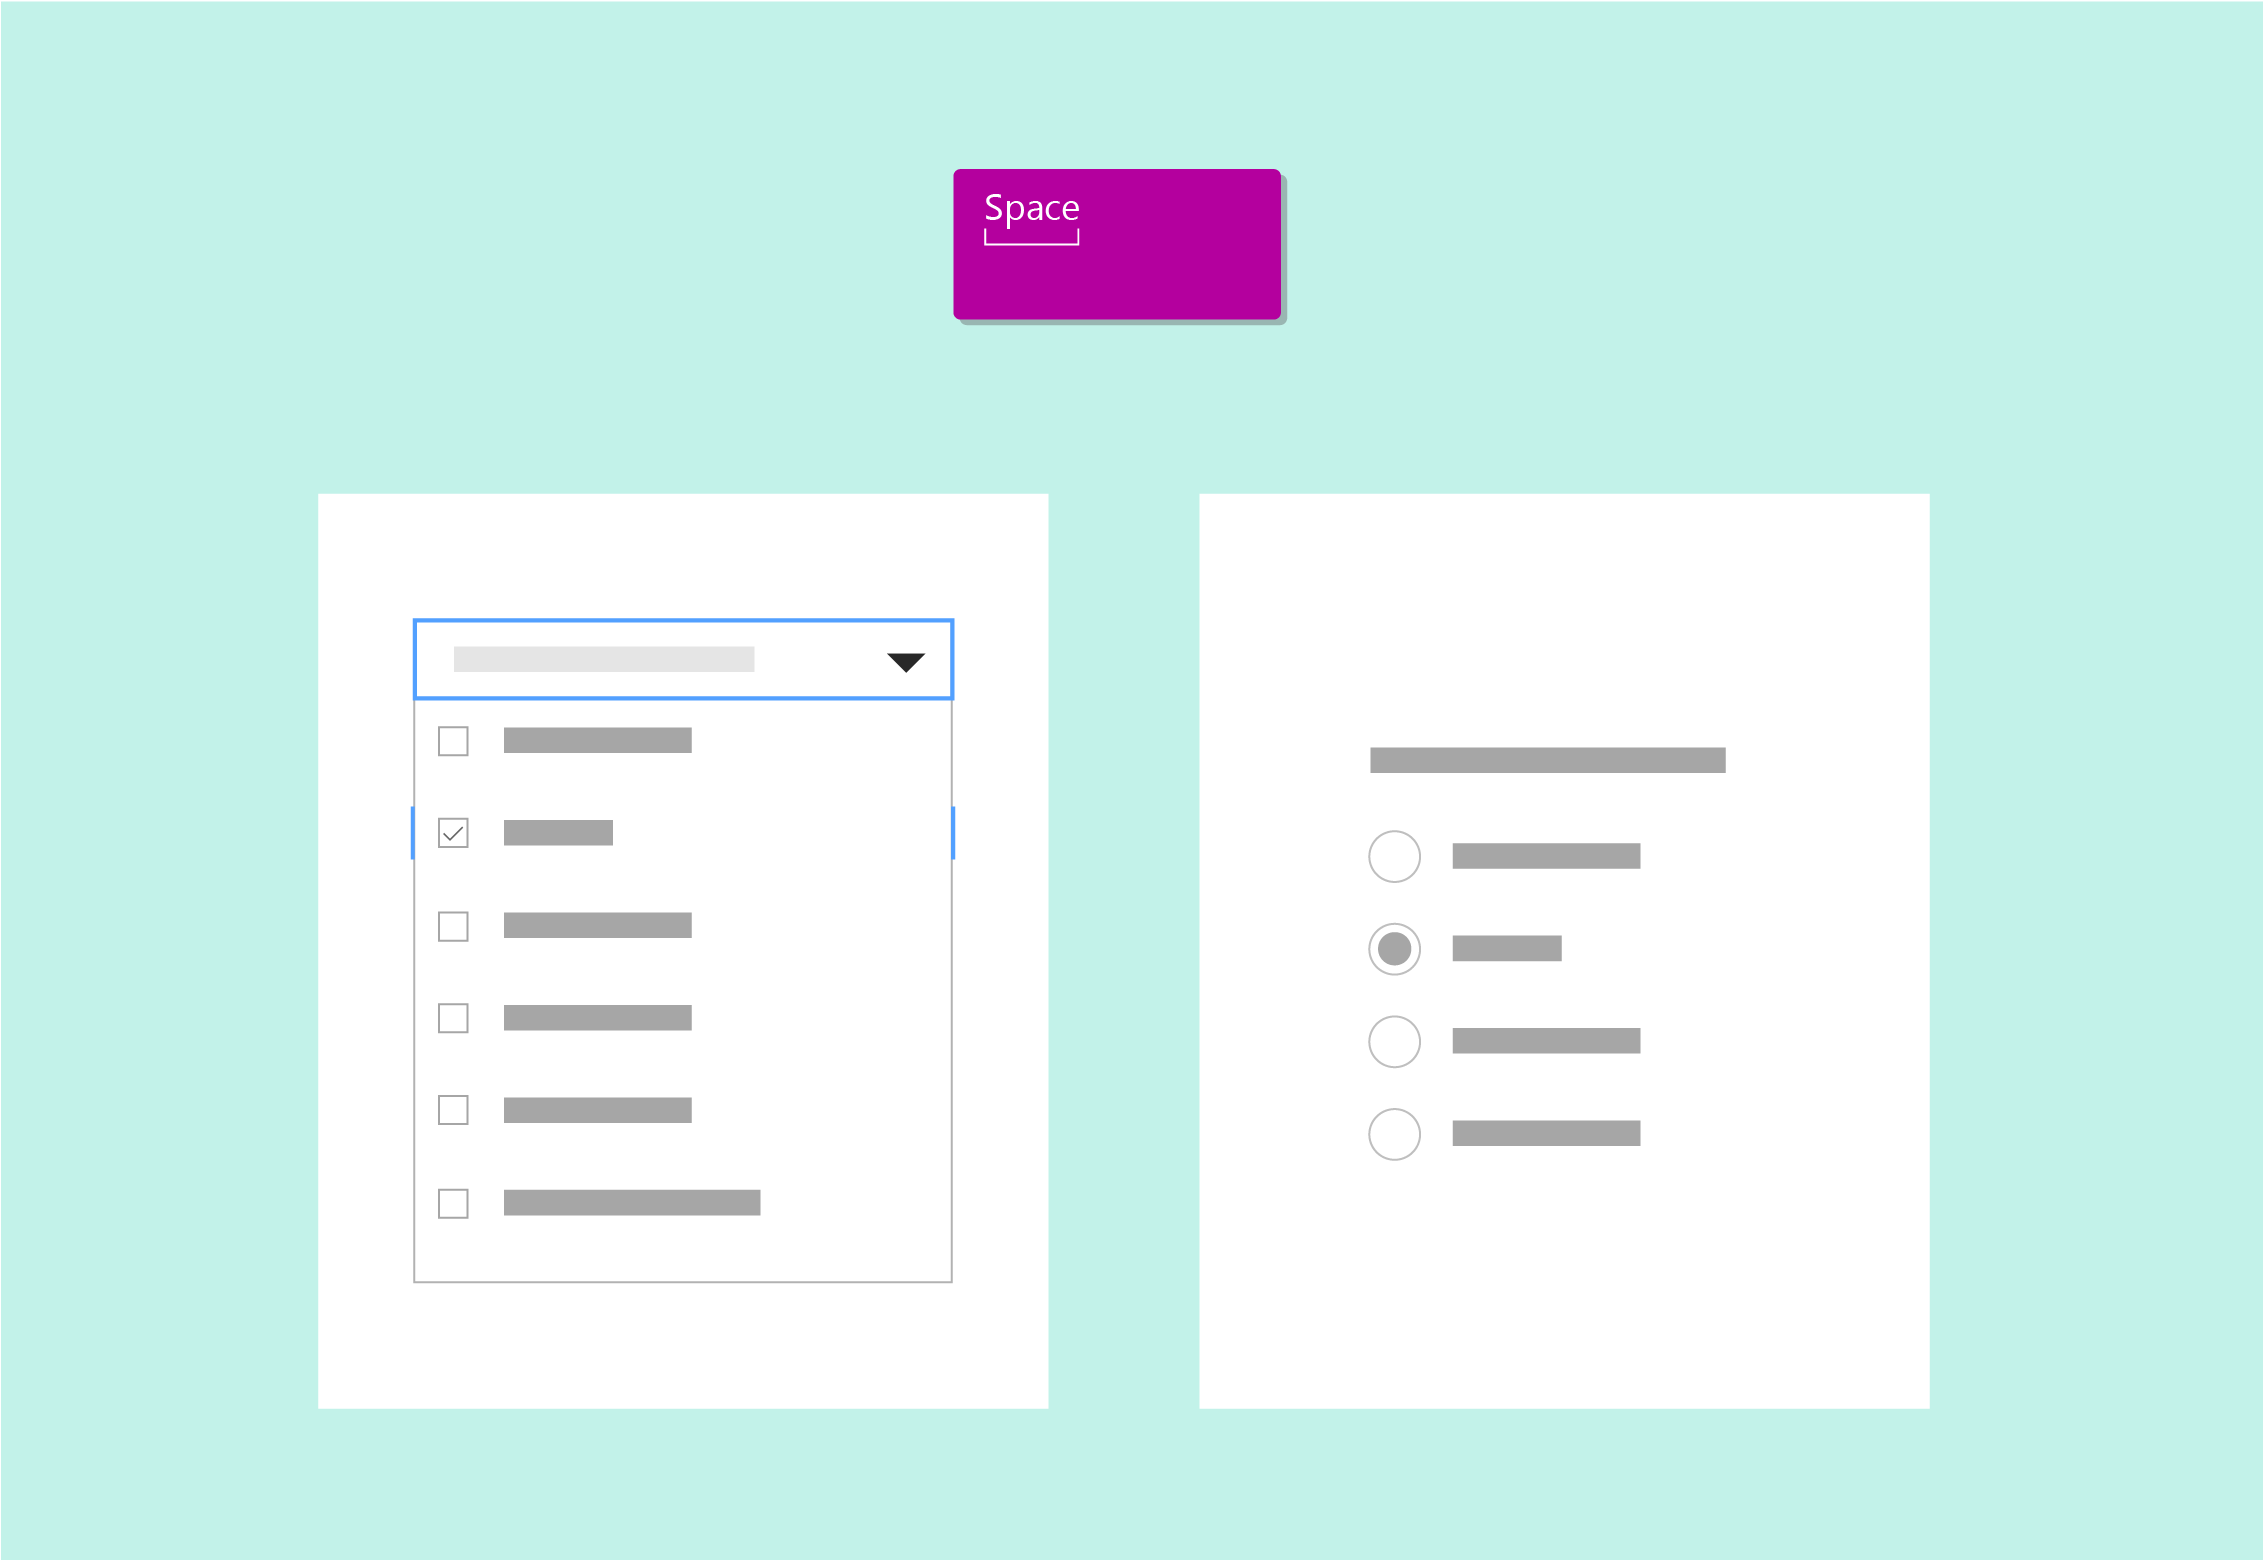 Accessibility in Point web part design